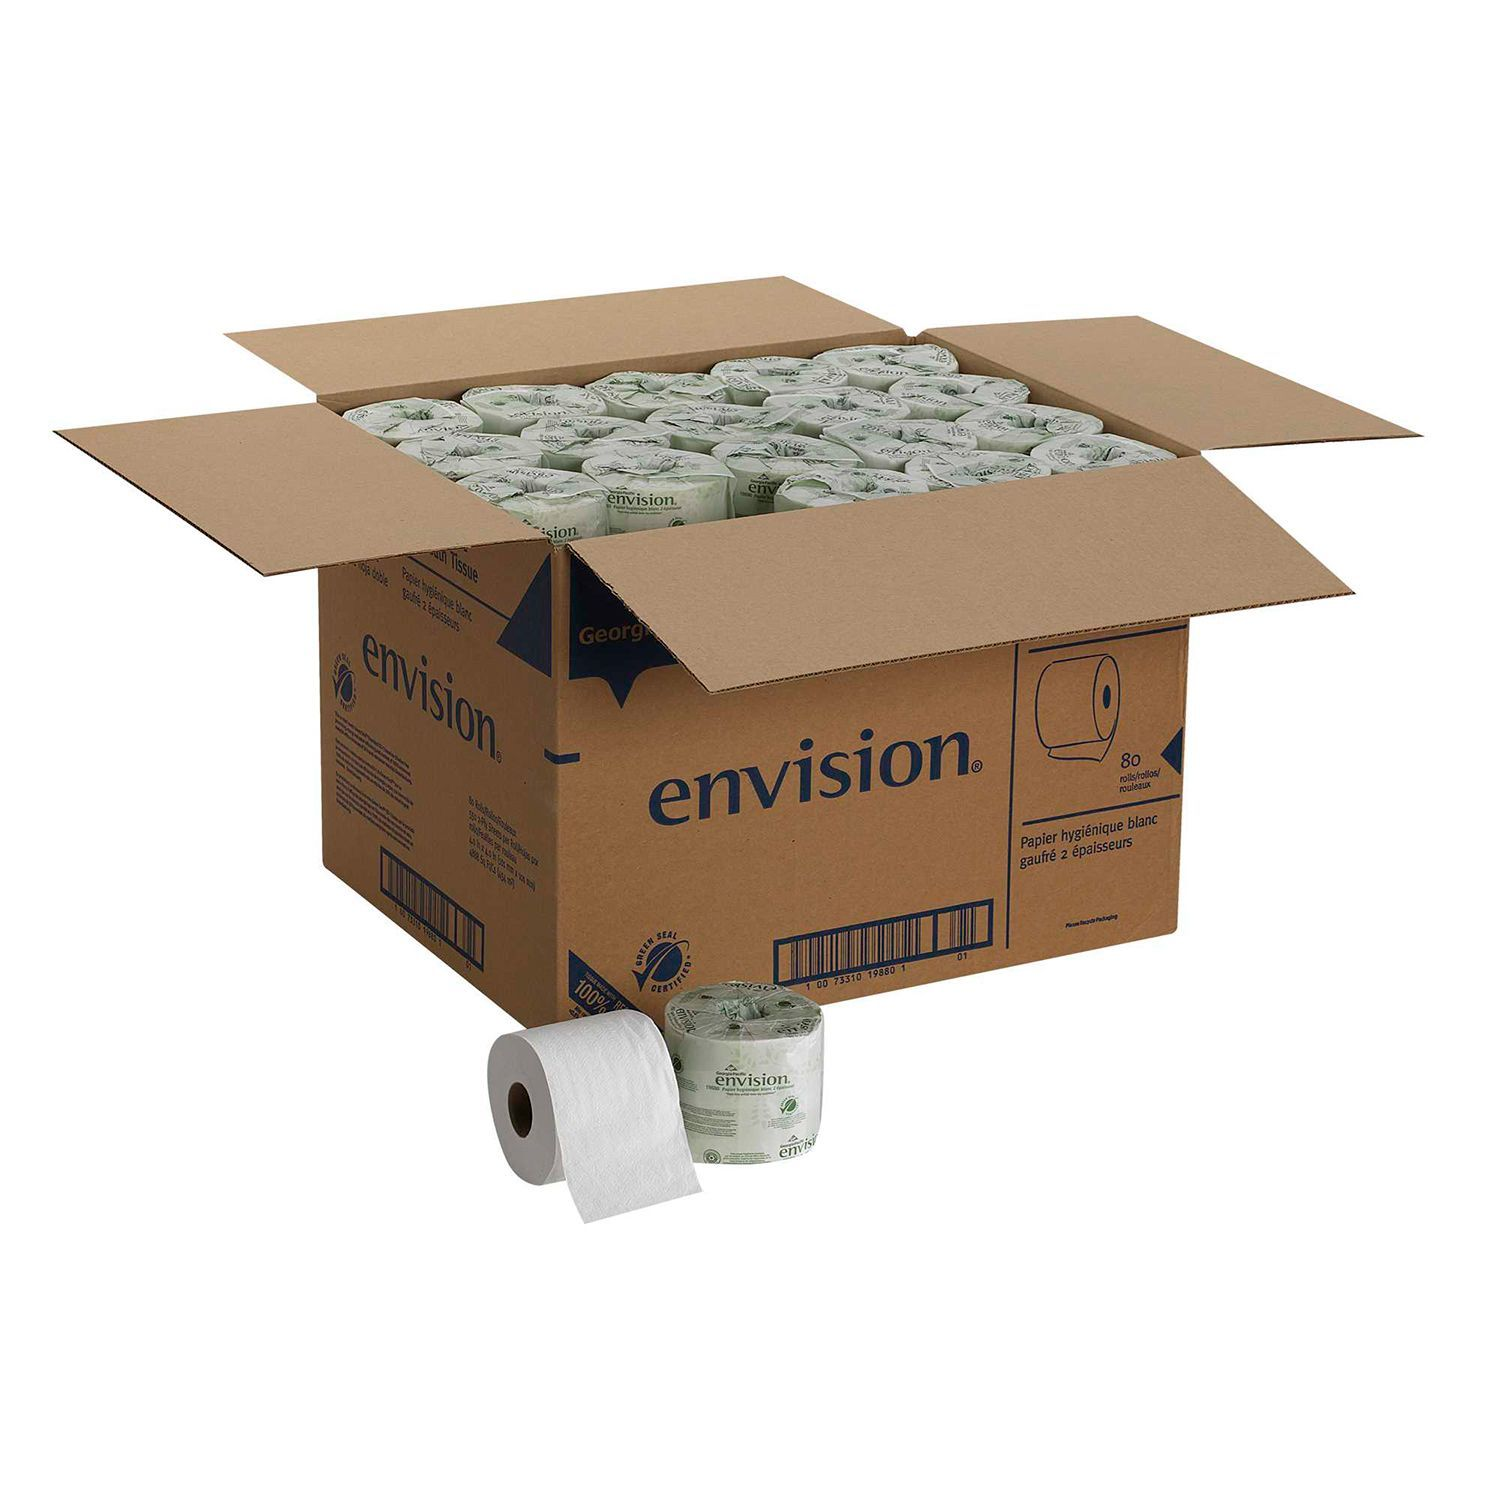 2-Ply 80 Rolls Bath Tissues Georgia Pacific 550 Sheets Recycled Envision